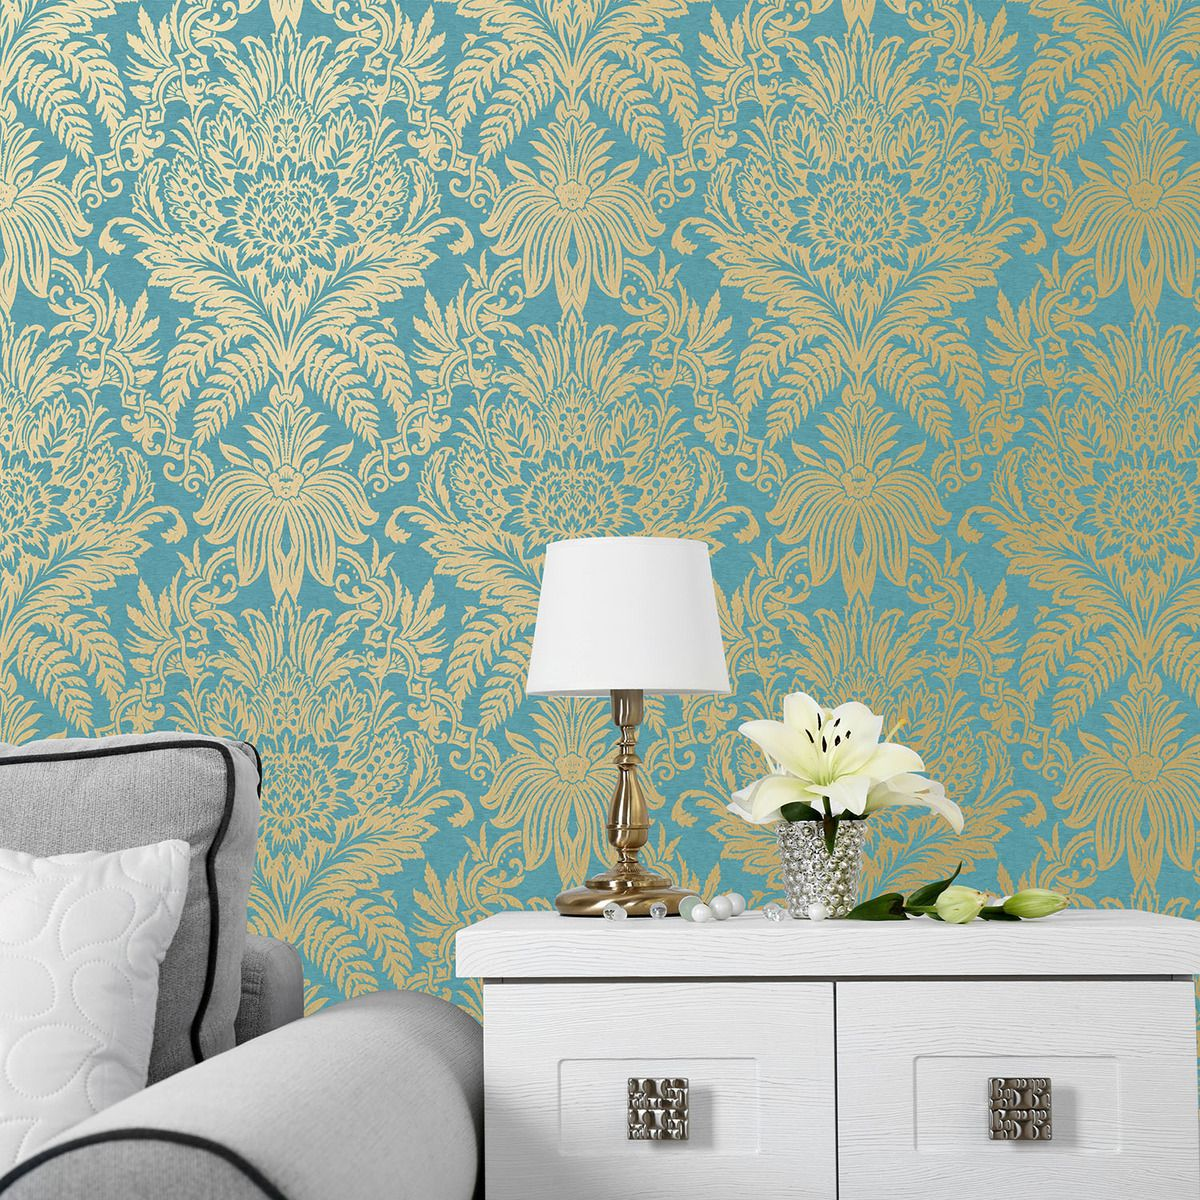 Crown Signature Leaf Signature Rich Teal M1064 Damask Wallp